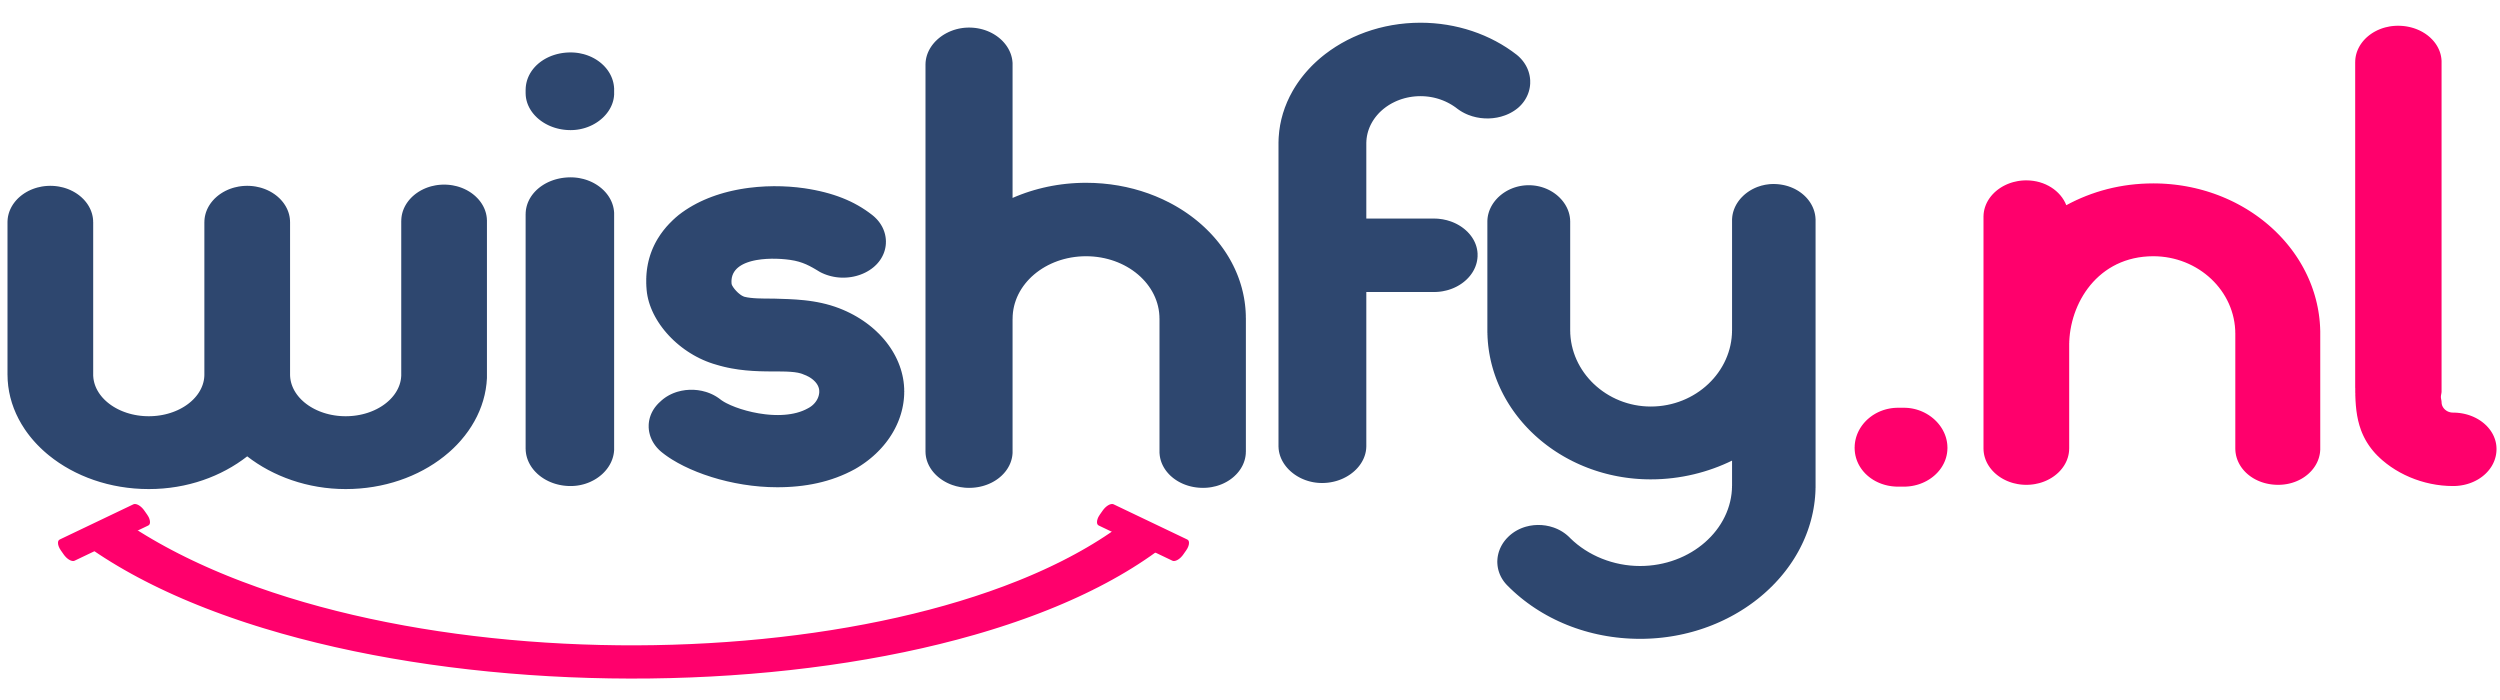 Wishfy.nl - Handelt namens Partner DongGuan City YunLing Electronic Technology co,.ltd